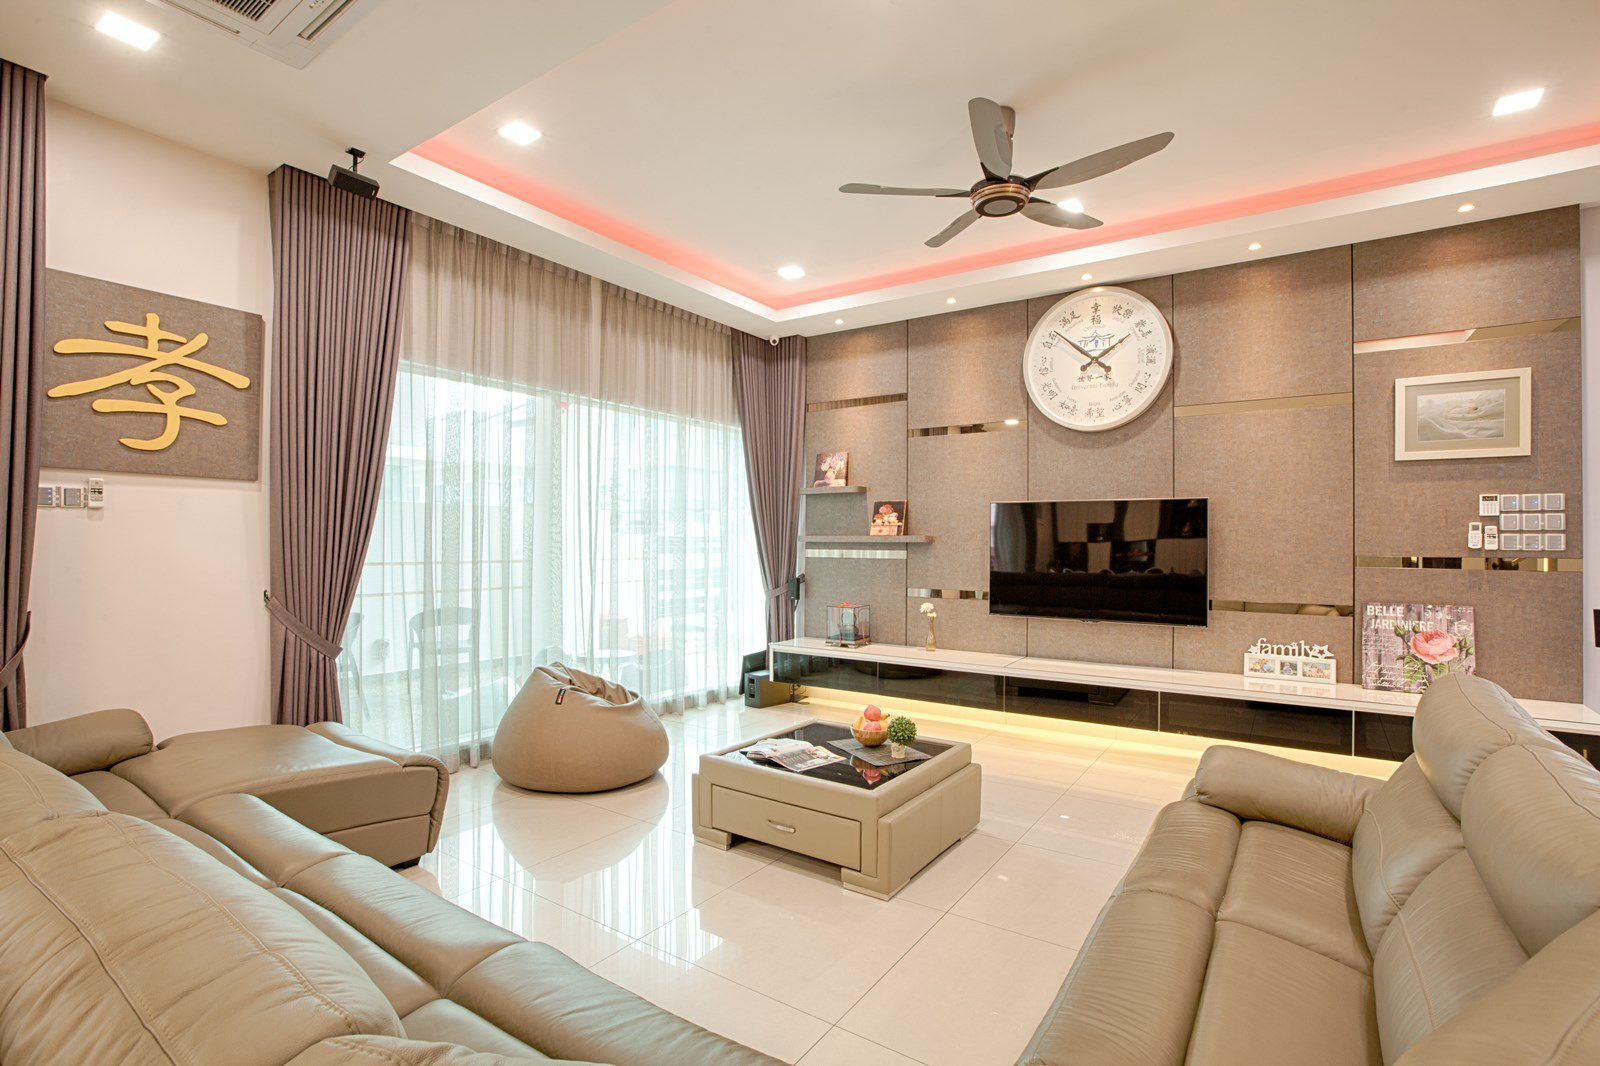 Feng Shui Elements Abound In This Malaysian Home Feng Shui Living Room Design Bathroom Furniture